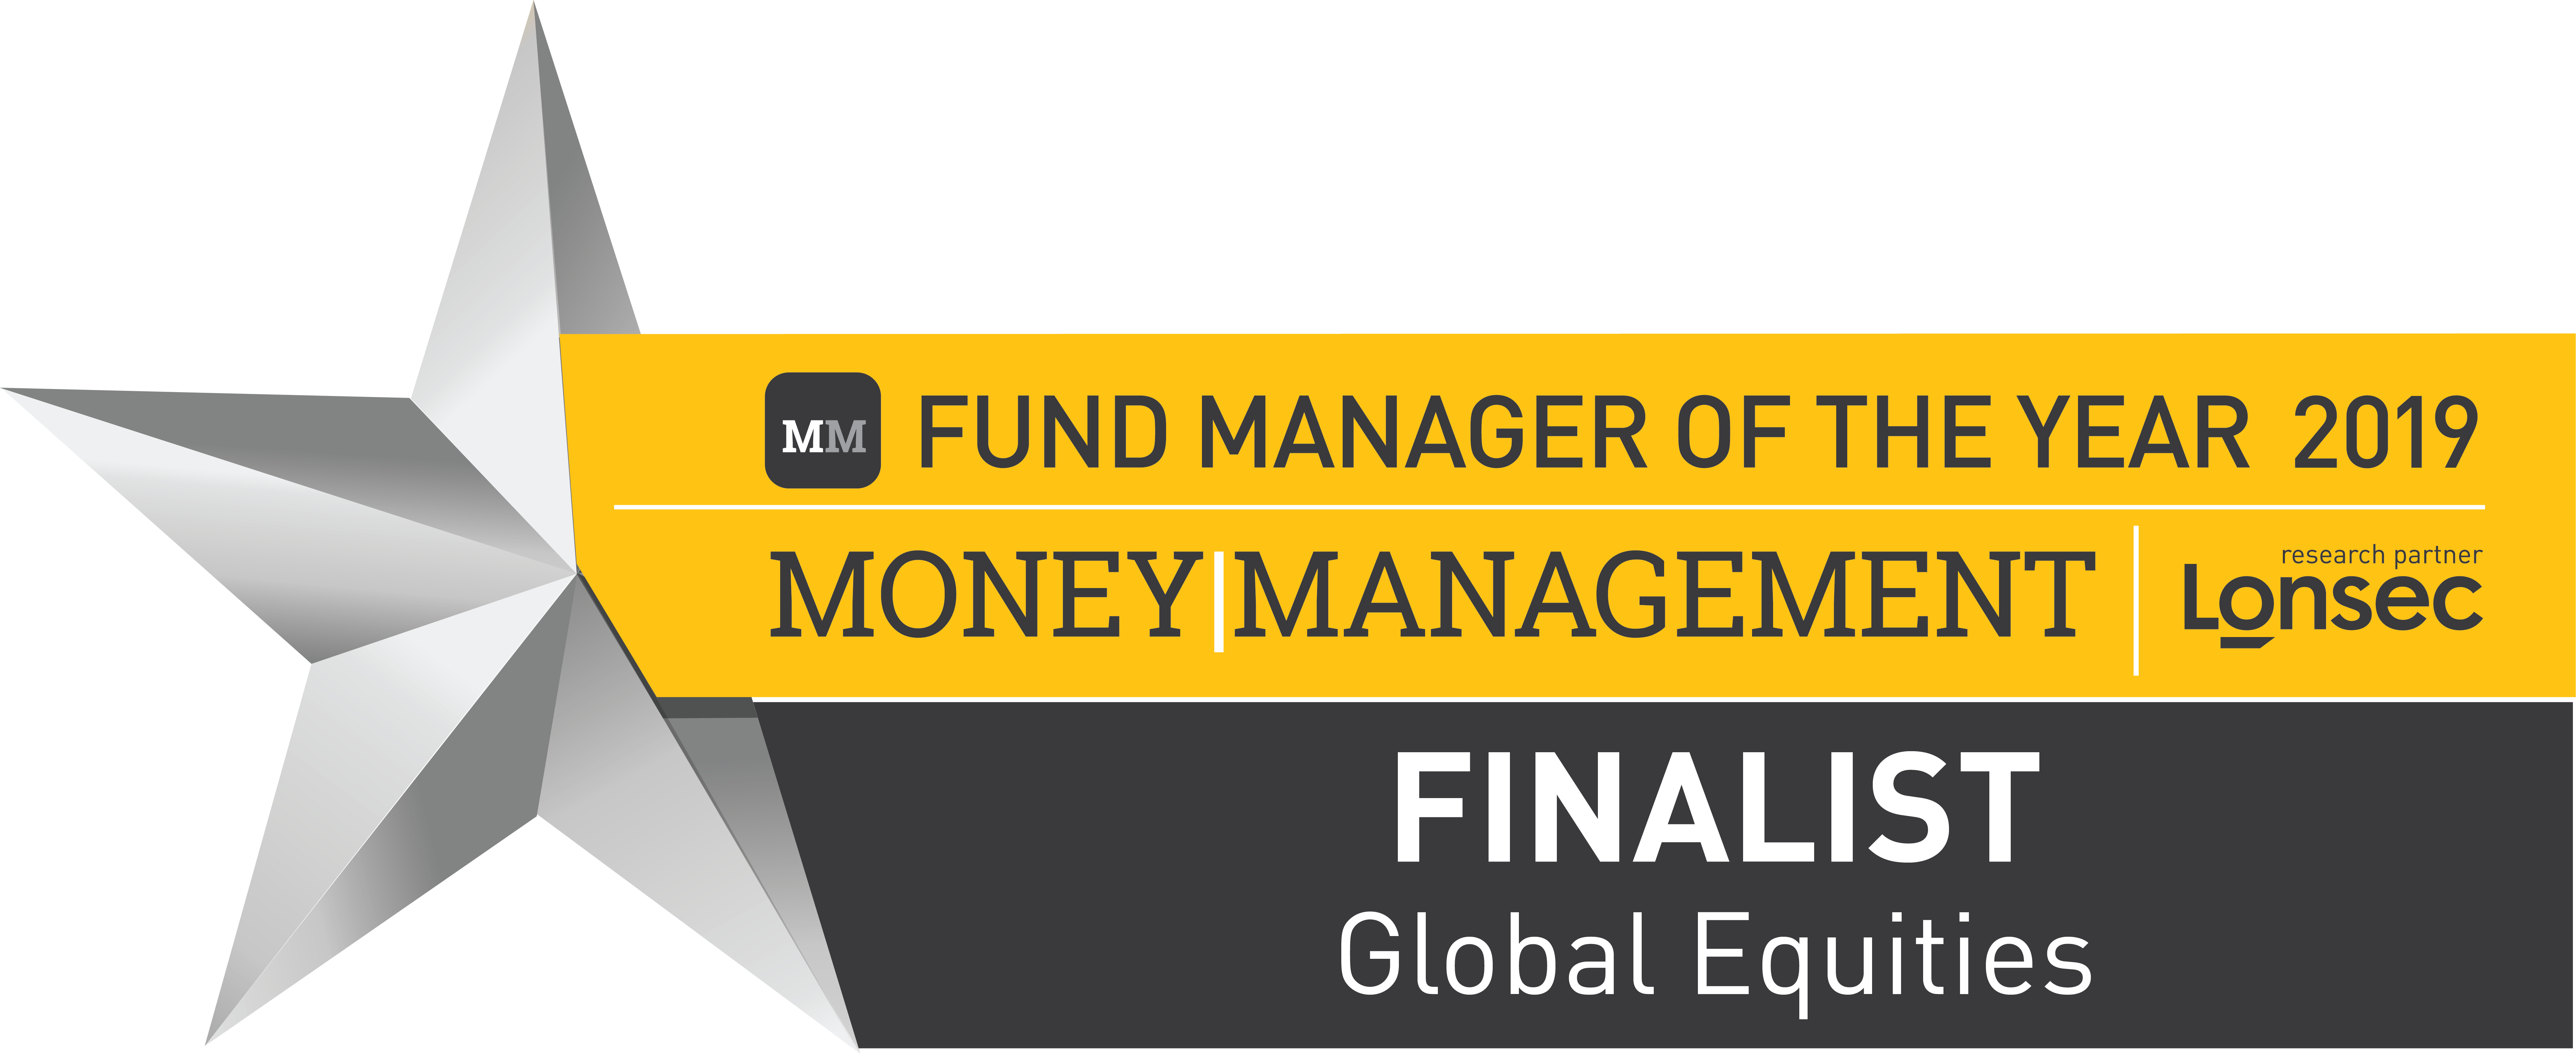 Money Management Fund Manager of the Year Finalist